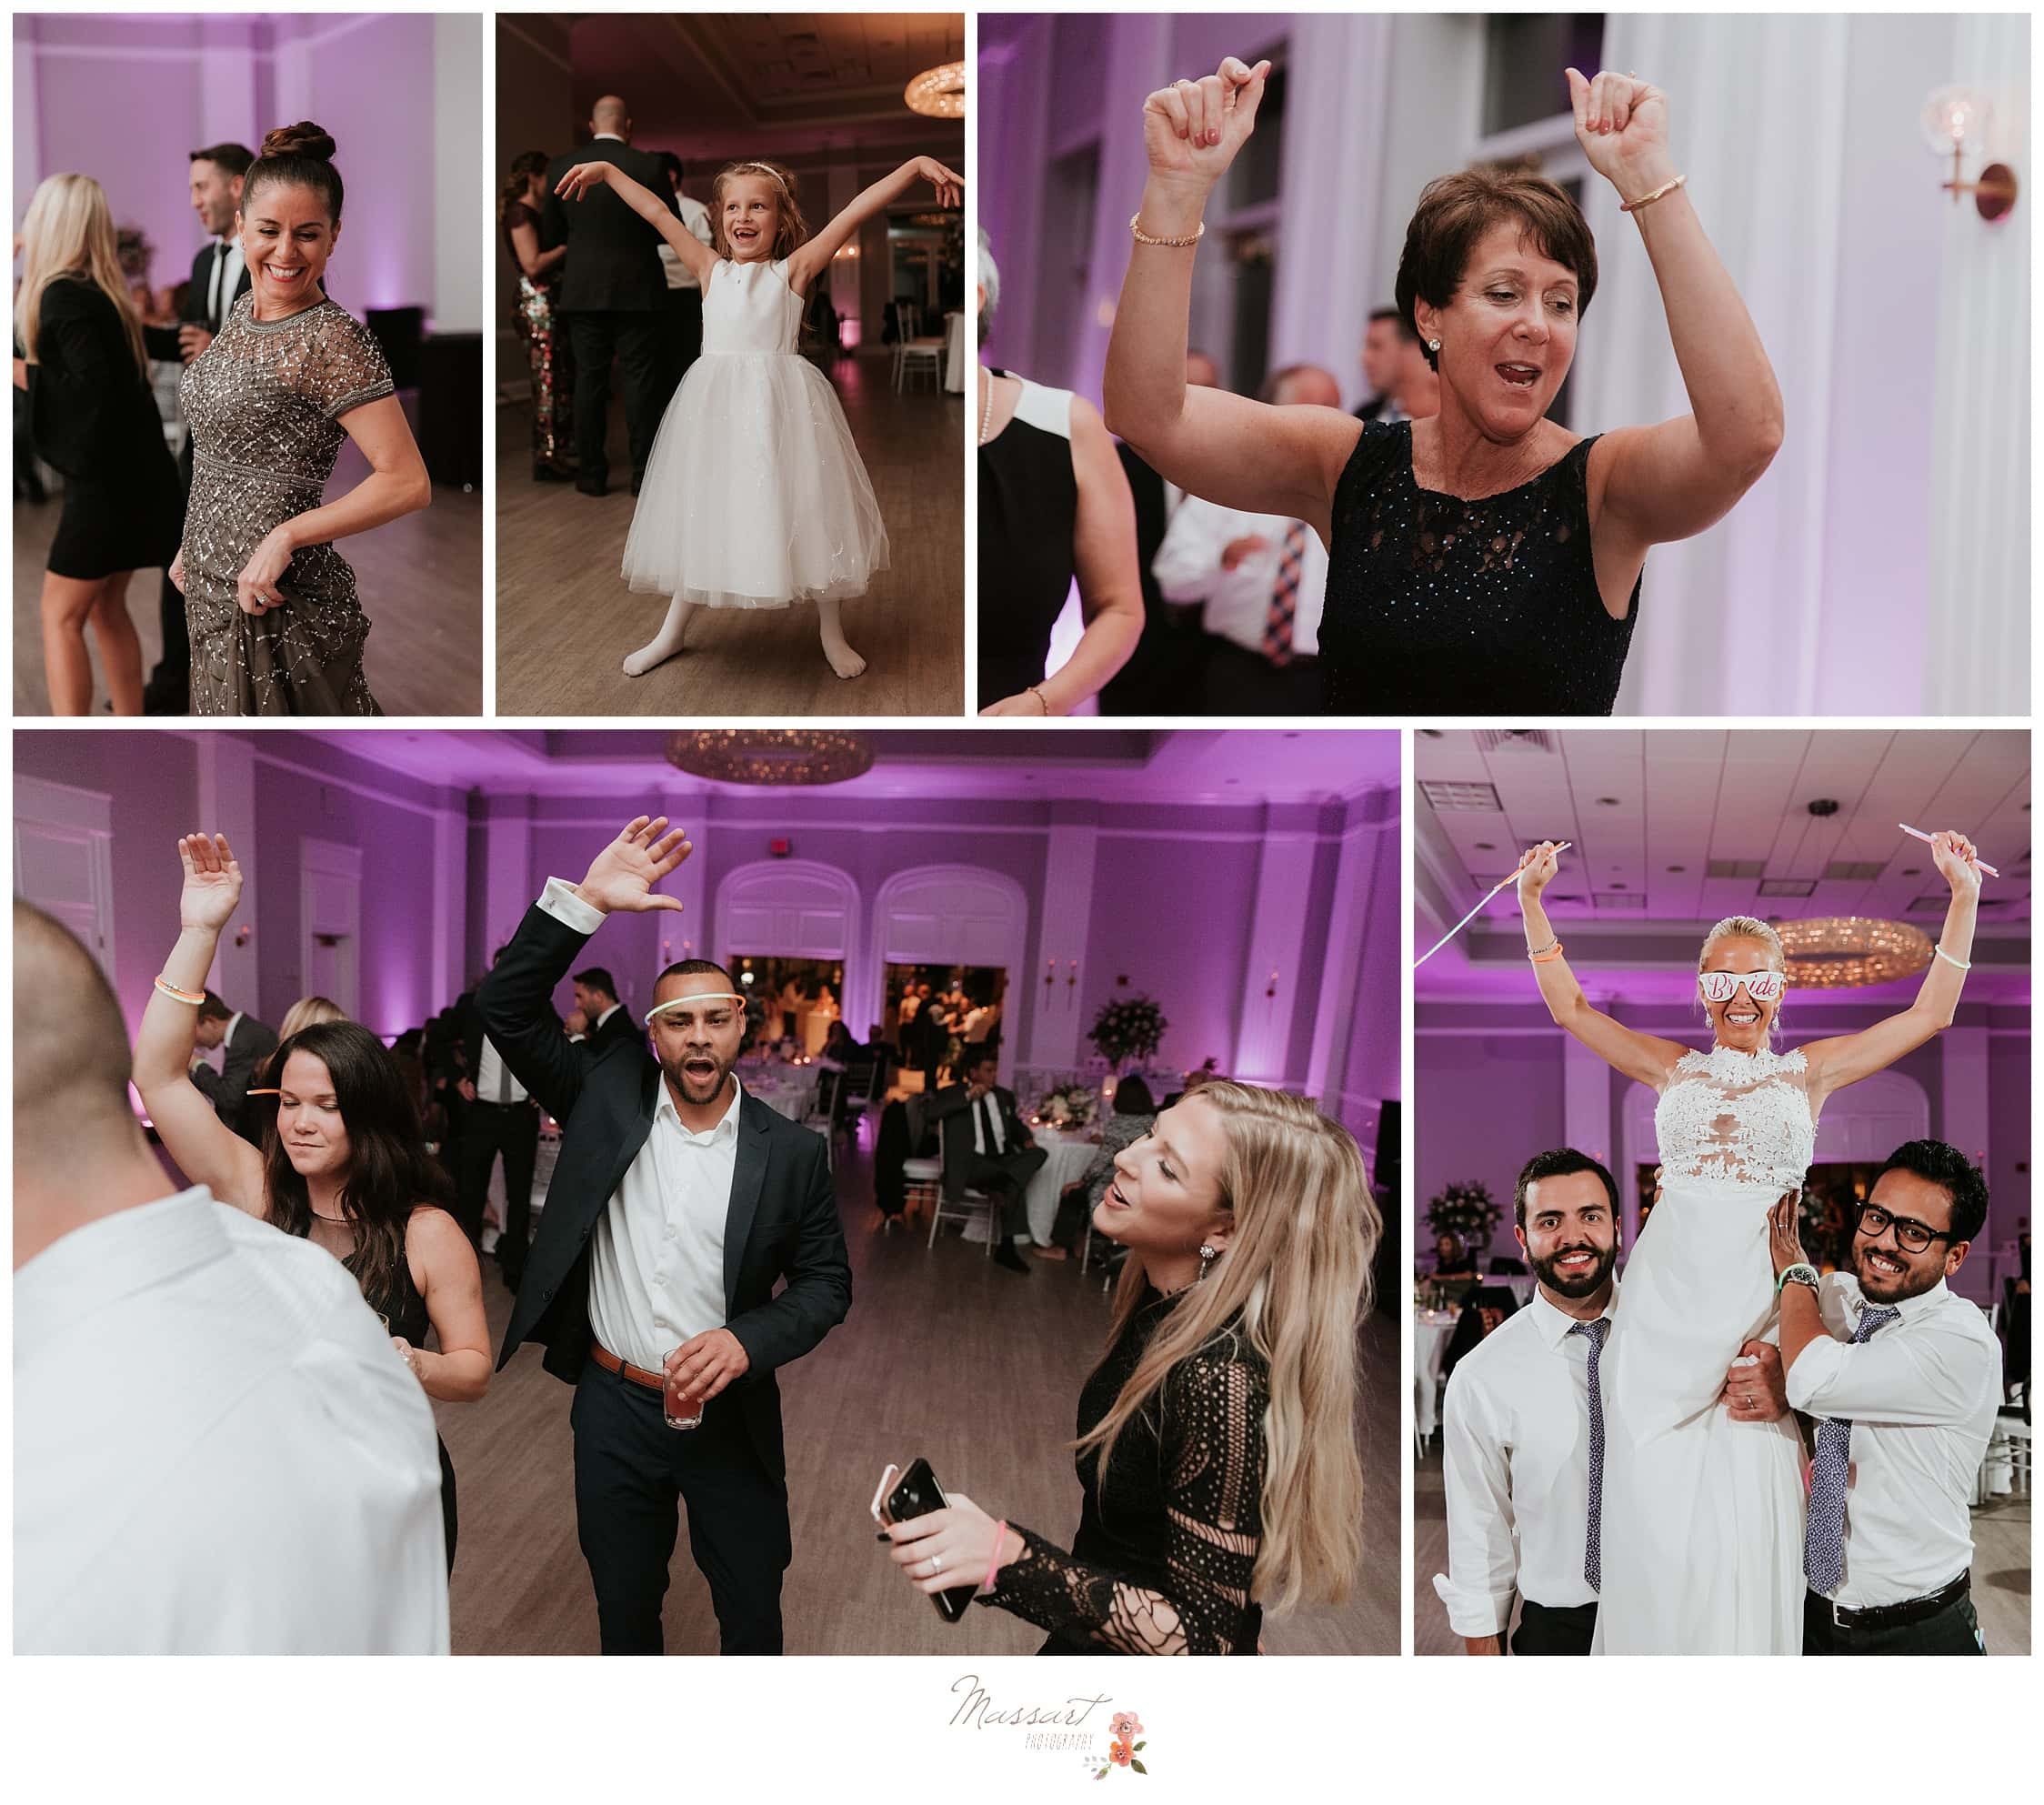 Wedding guests dance and have a fun time with the bride and groom photographed by Massart Photography Rhode Island